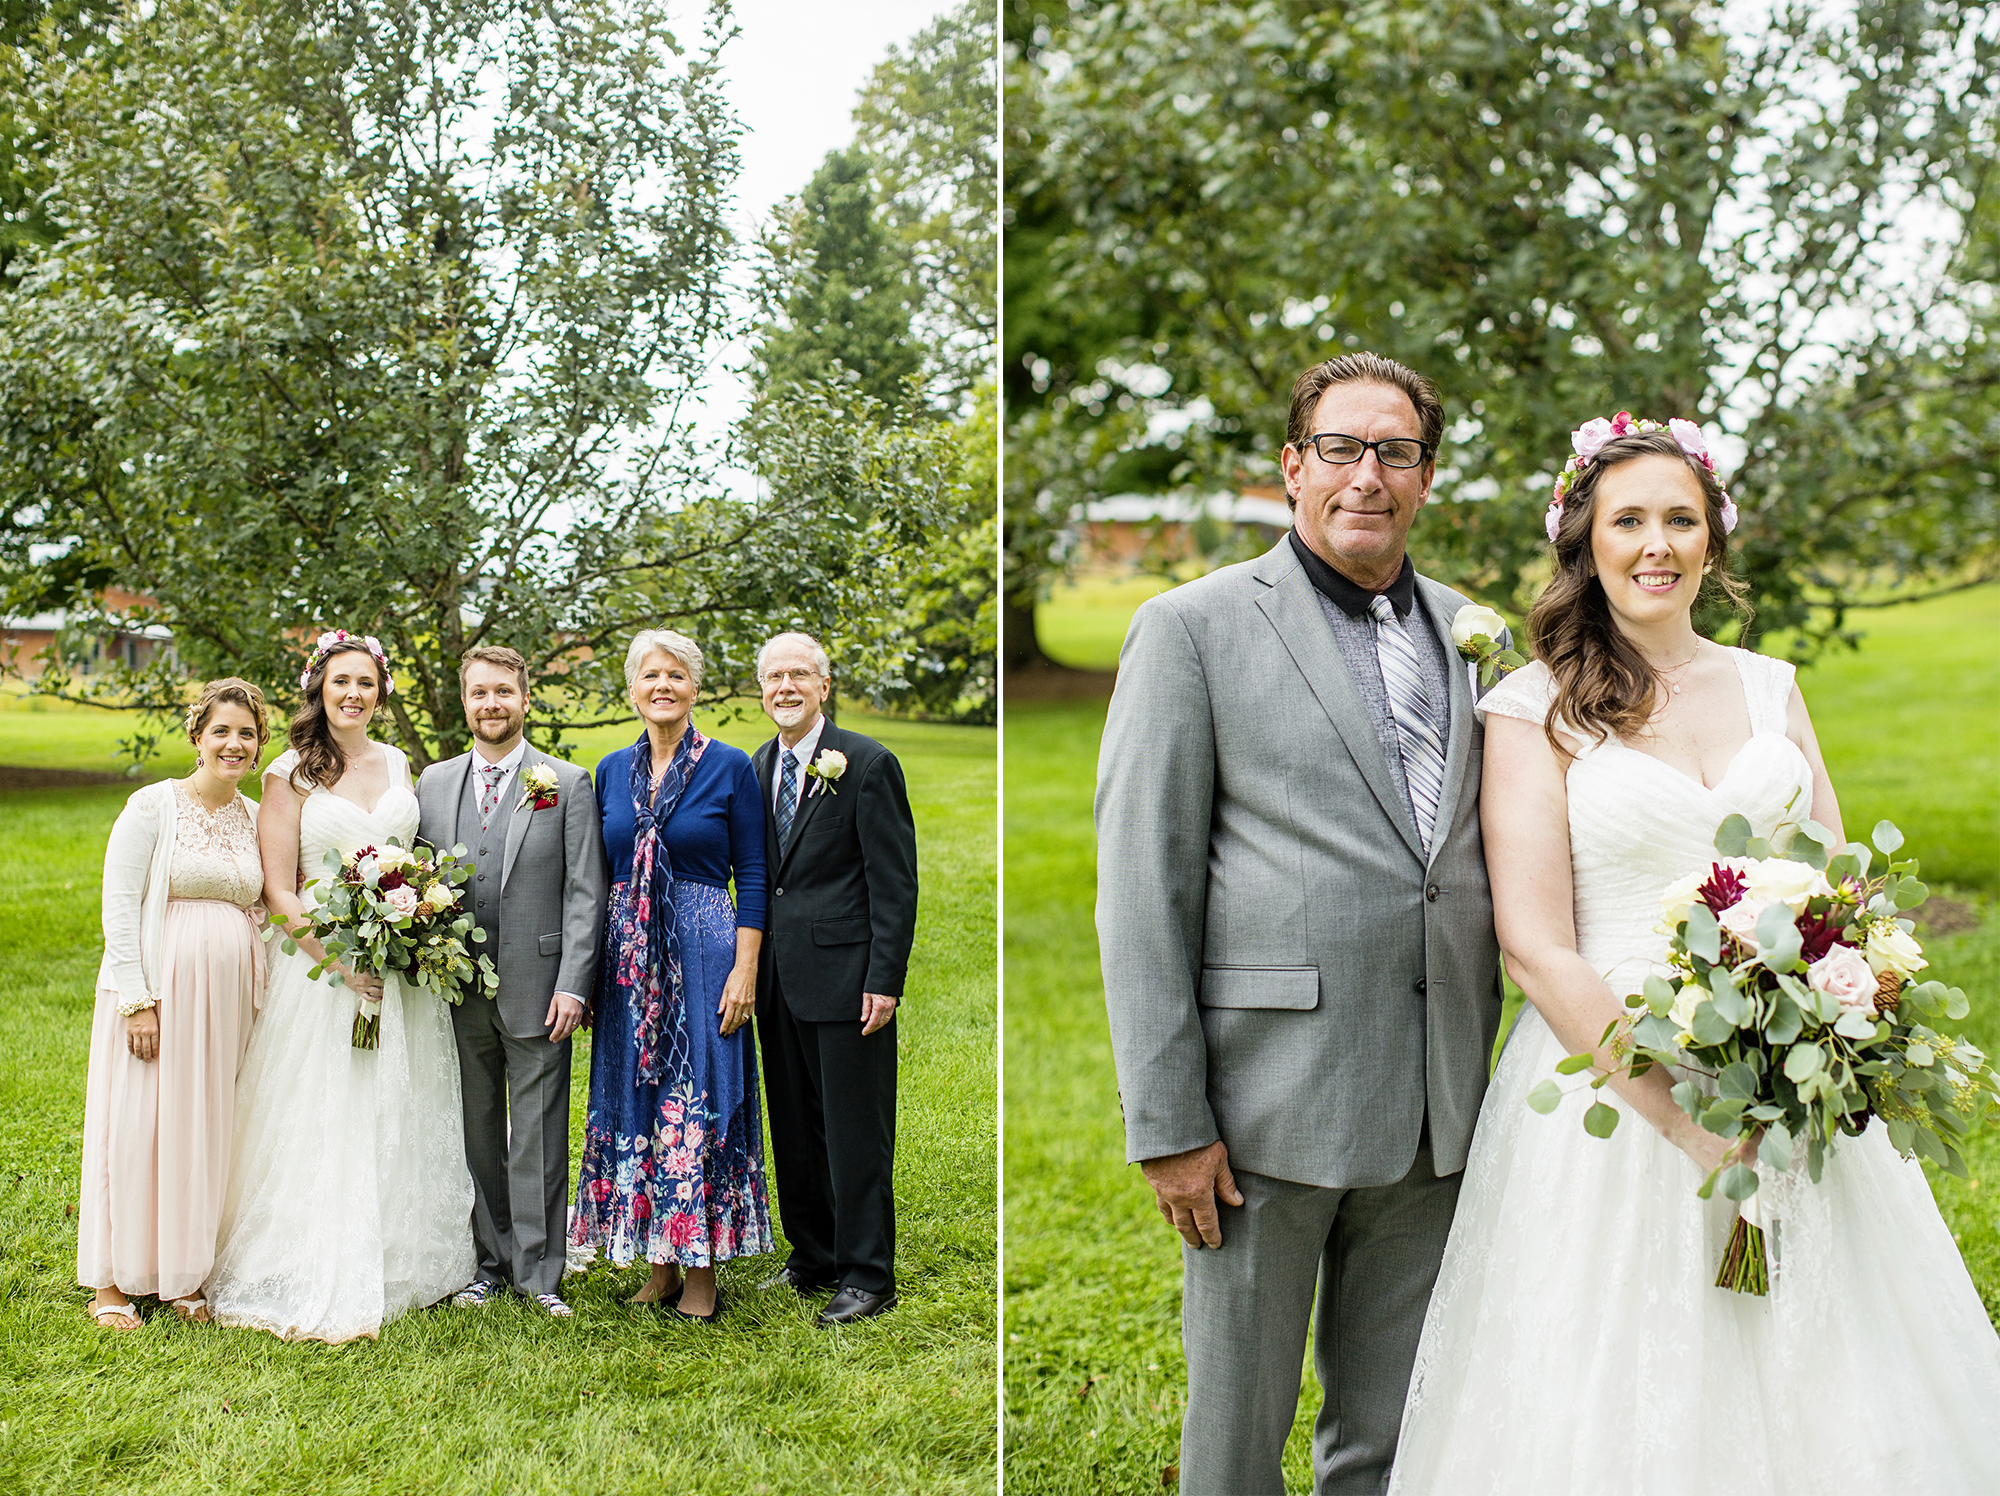 Seriously_Sabrina_Photography_Lisle_Illinois_Morton_Arboretum_Wedding_Day_Gowen83.jpg